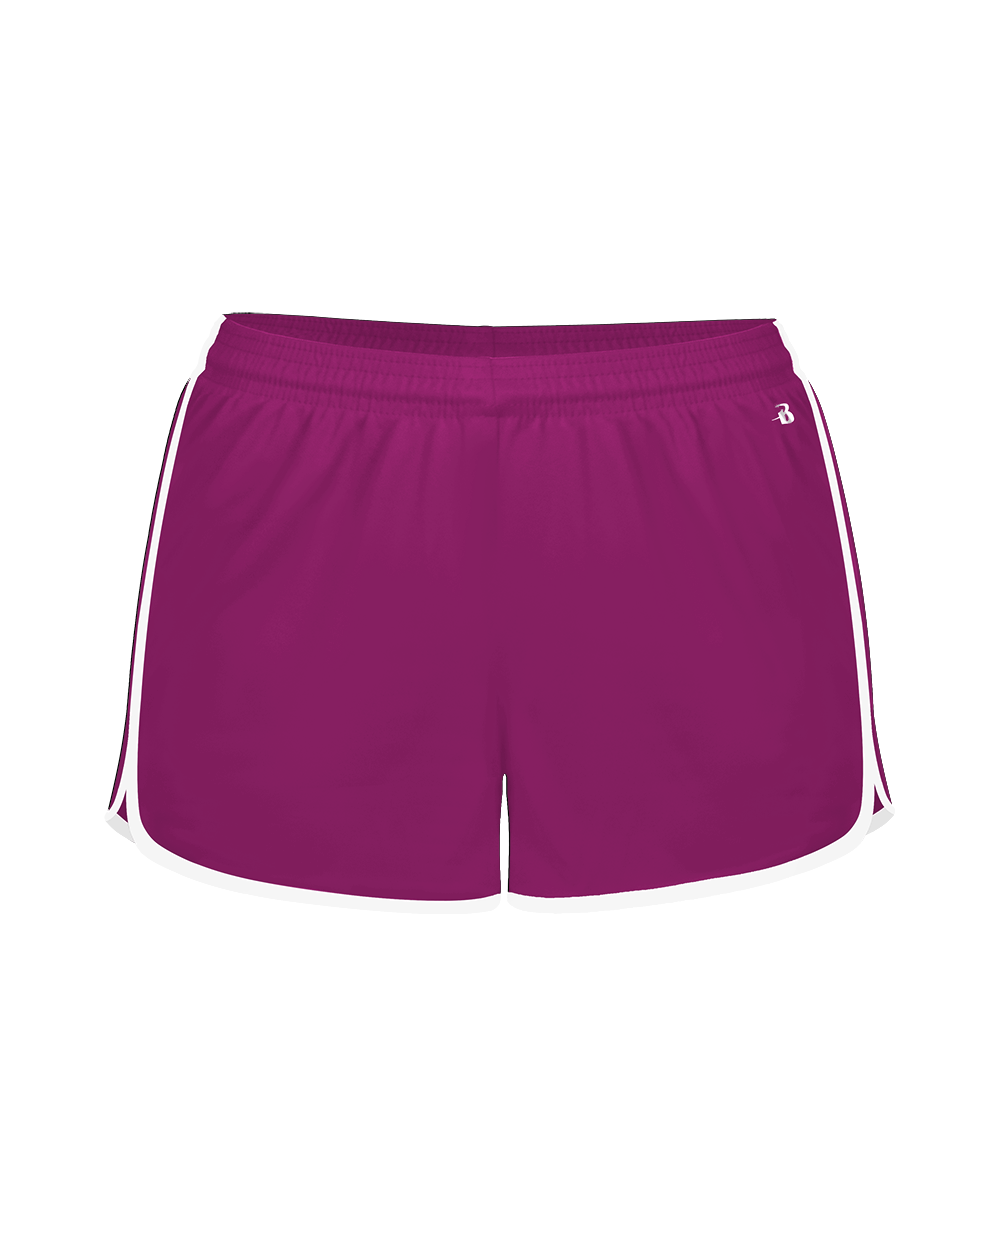 Velocity Women's Short - Hot Pink/White